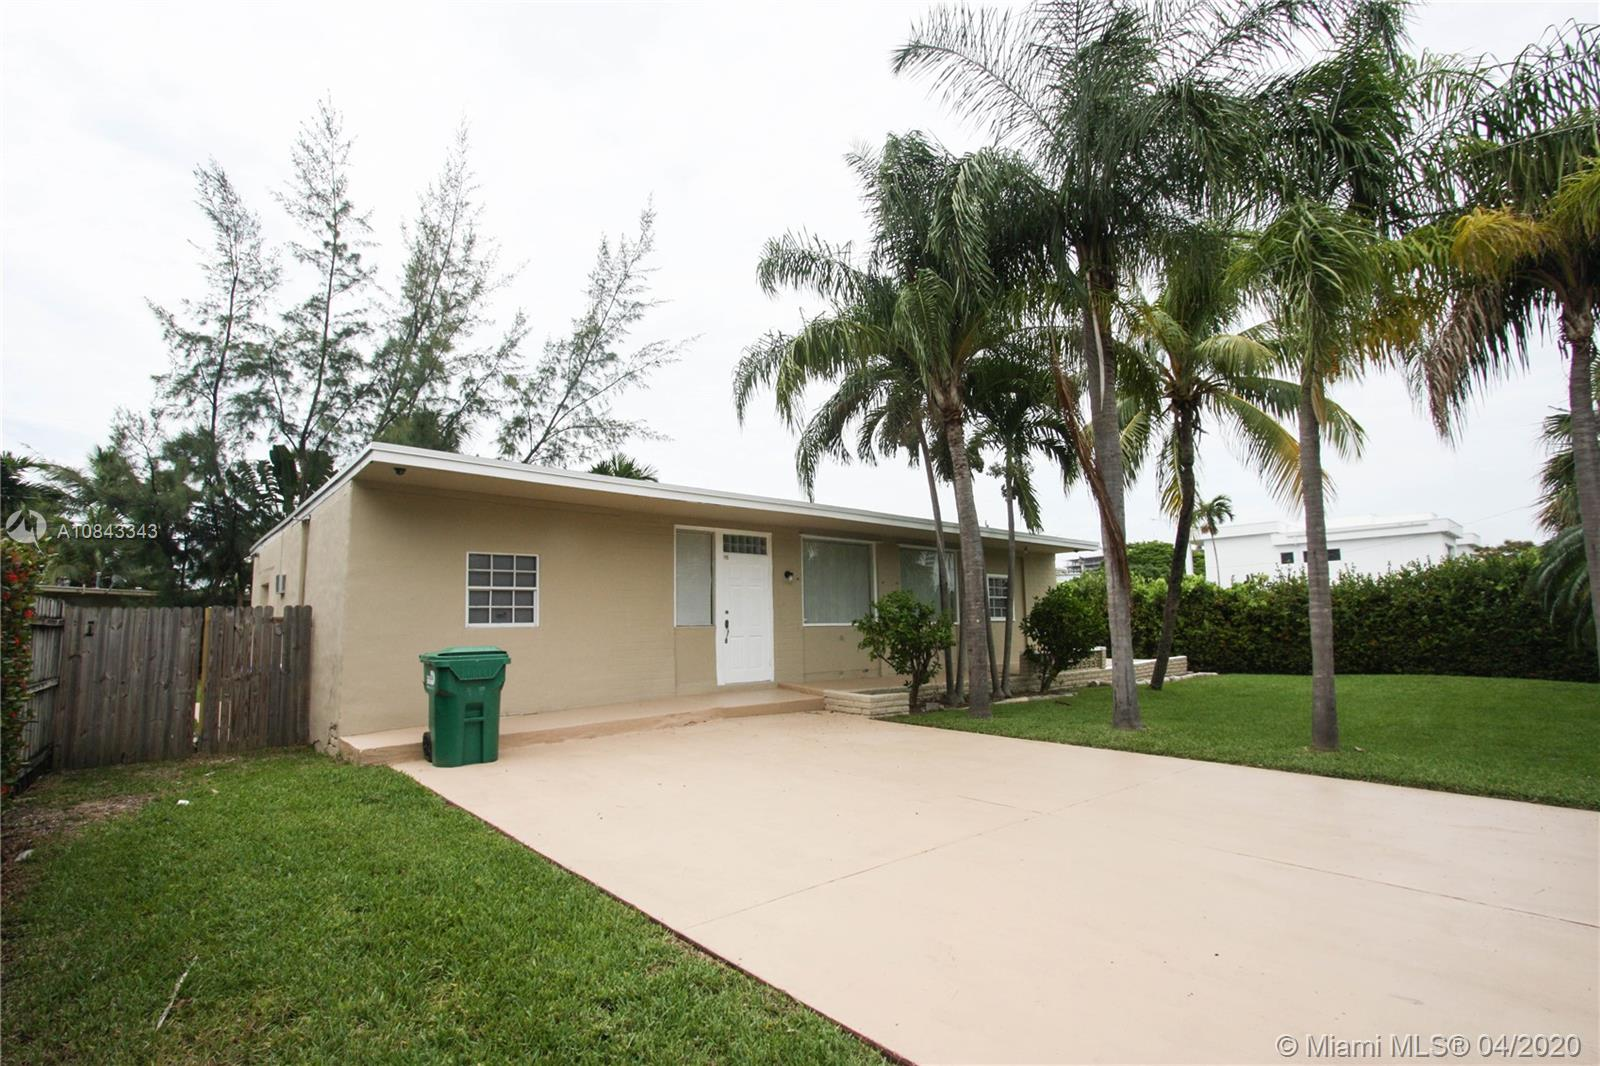 332 189th St, Sunny Isles Beach, Florida 33160, 4 Bedrooms Bedrooms, ,3 BathroomsBathrooms,Residential,For Sale,332 189th St,A10843343